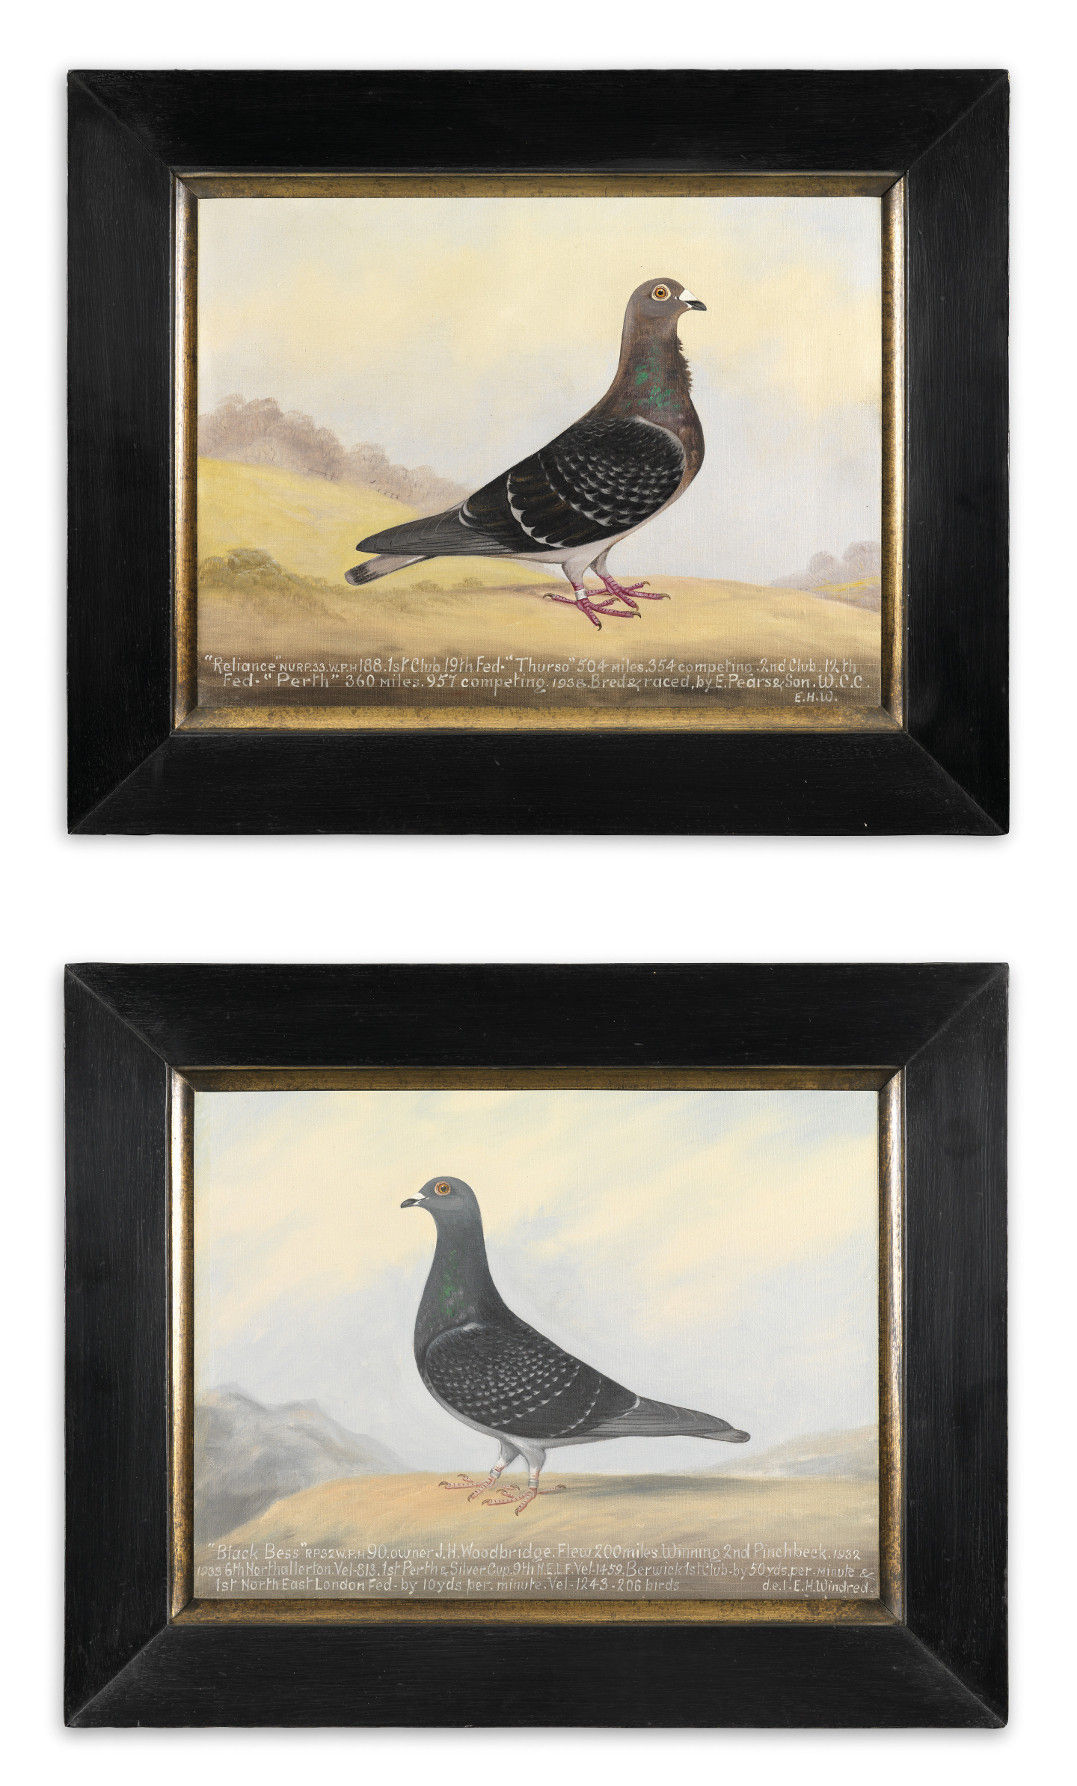 Two Racing Pigeon Portraits 'Reliance' and 'Black Bess'